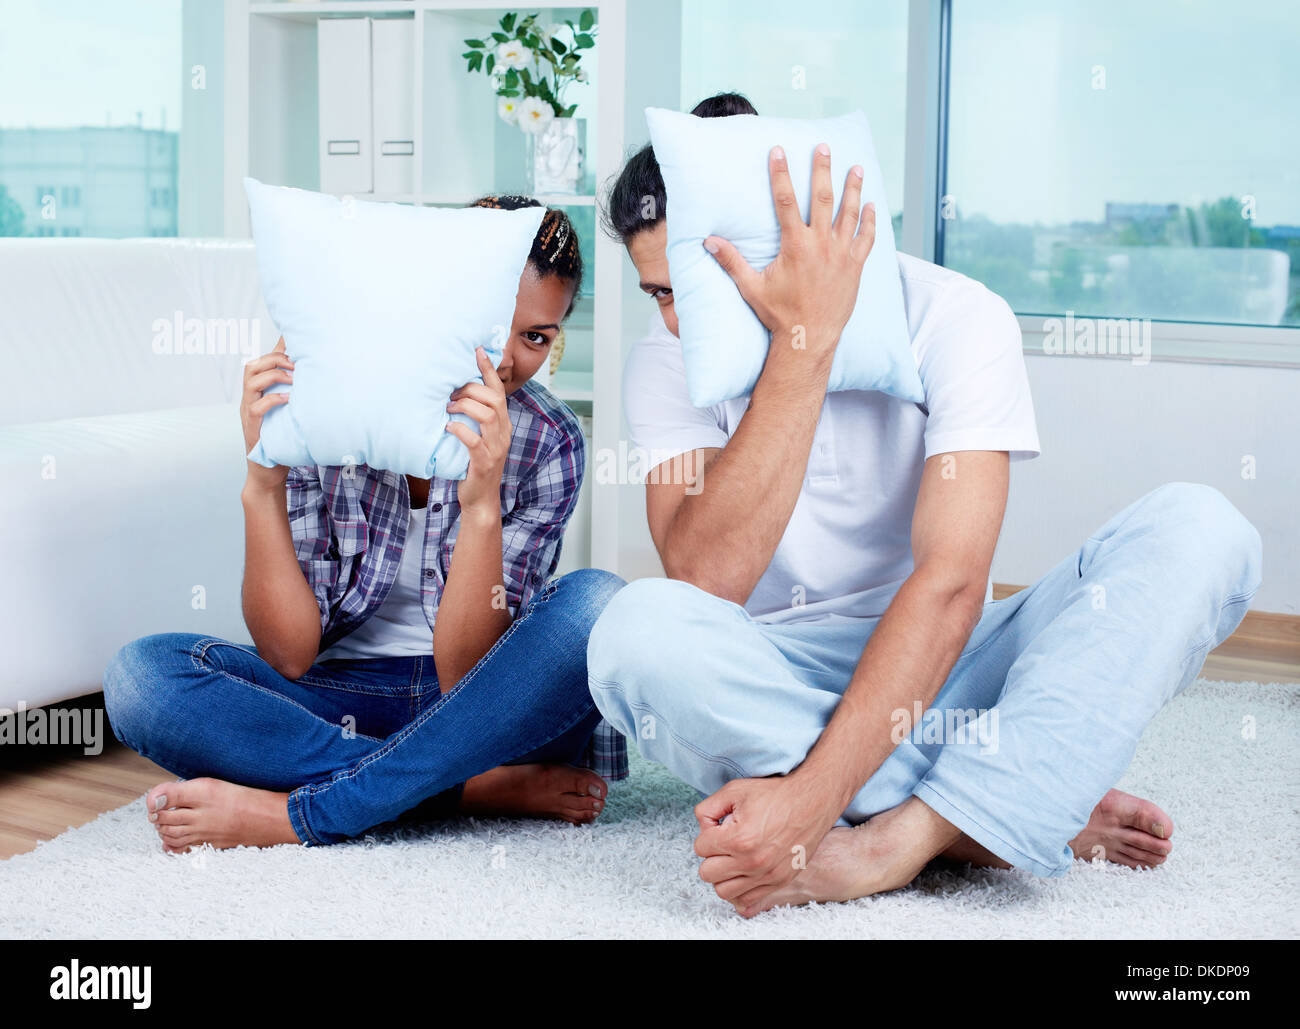 Image of guy and girl sitting on the floor with pillows by their ...